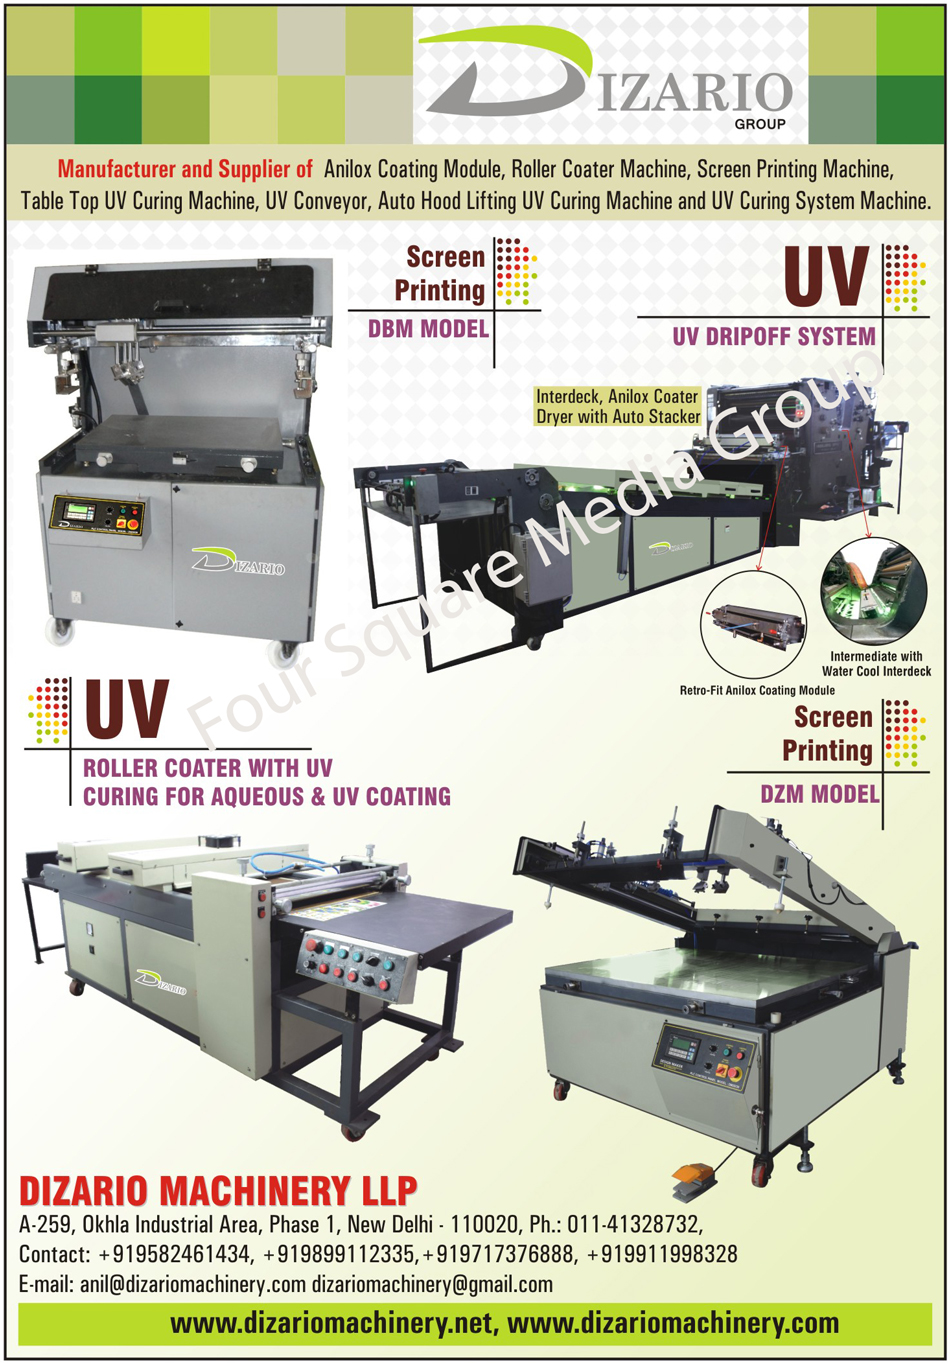 Anilox Coating Modules, Roller Coater Machines, Screen Printing Machines, Table Top UV Curing Machines, UV Conveyors, Auto Hood Lifting UV Curing Machine, UV Curing System Machines, Interdeck Coater Dryers, Anilox Coater Dryers